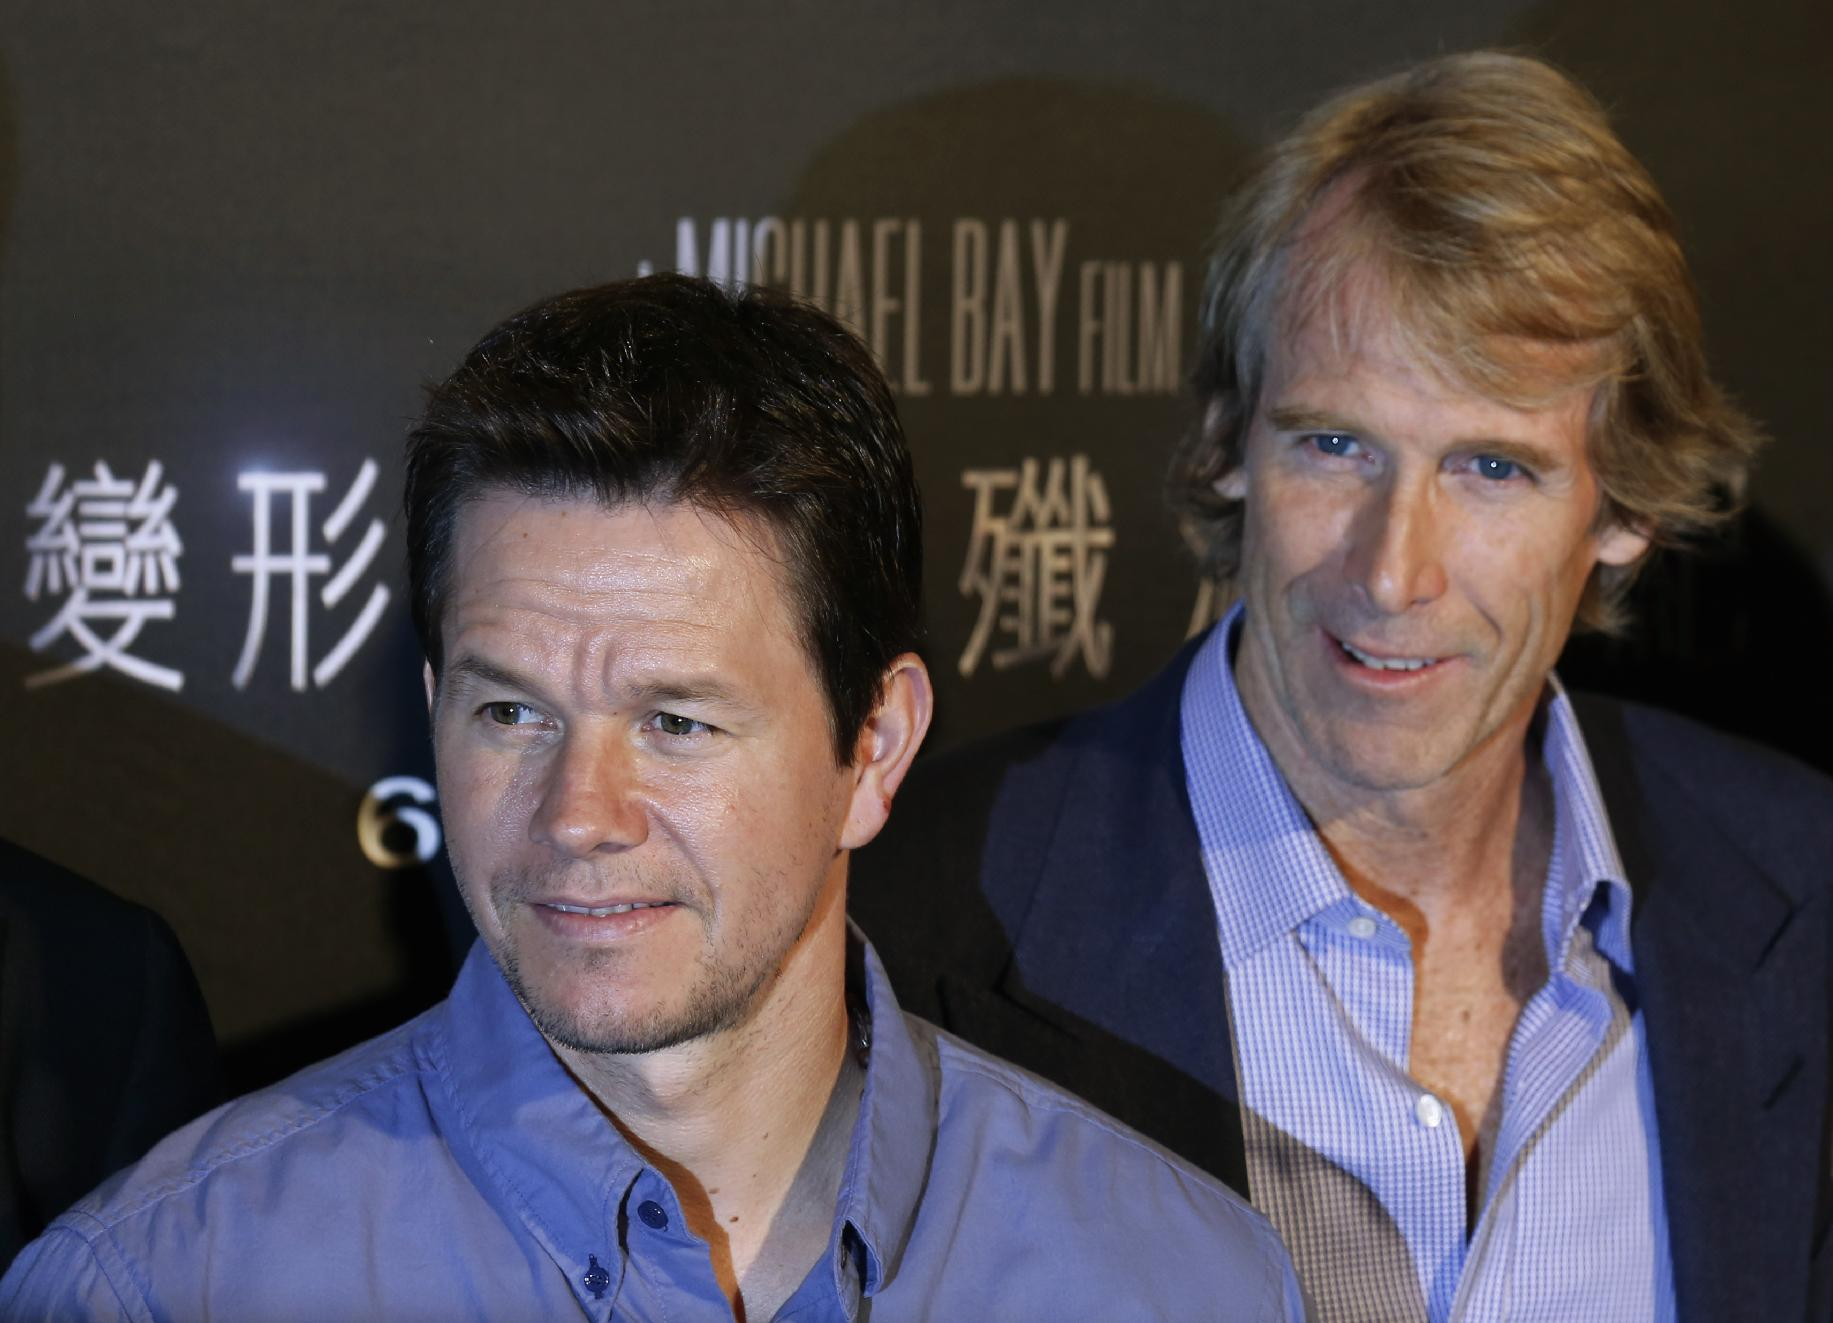 Wahlberg and Bay reunite for pre-Super Bowl charity event